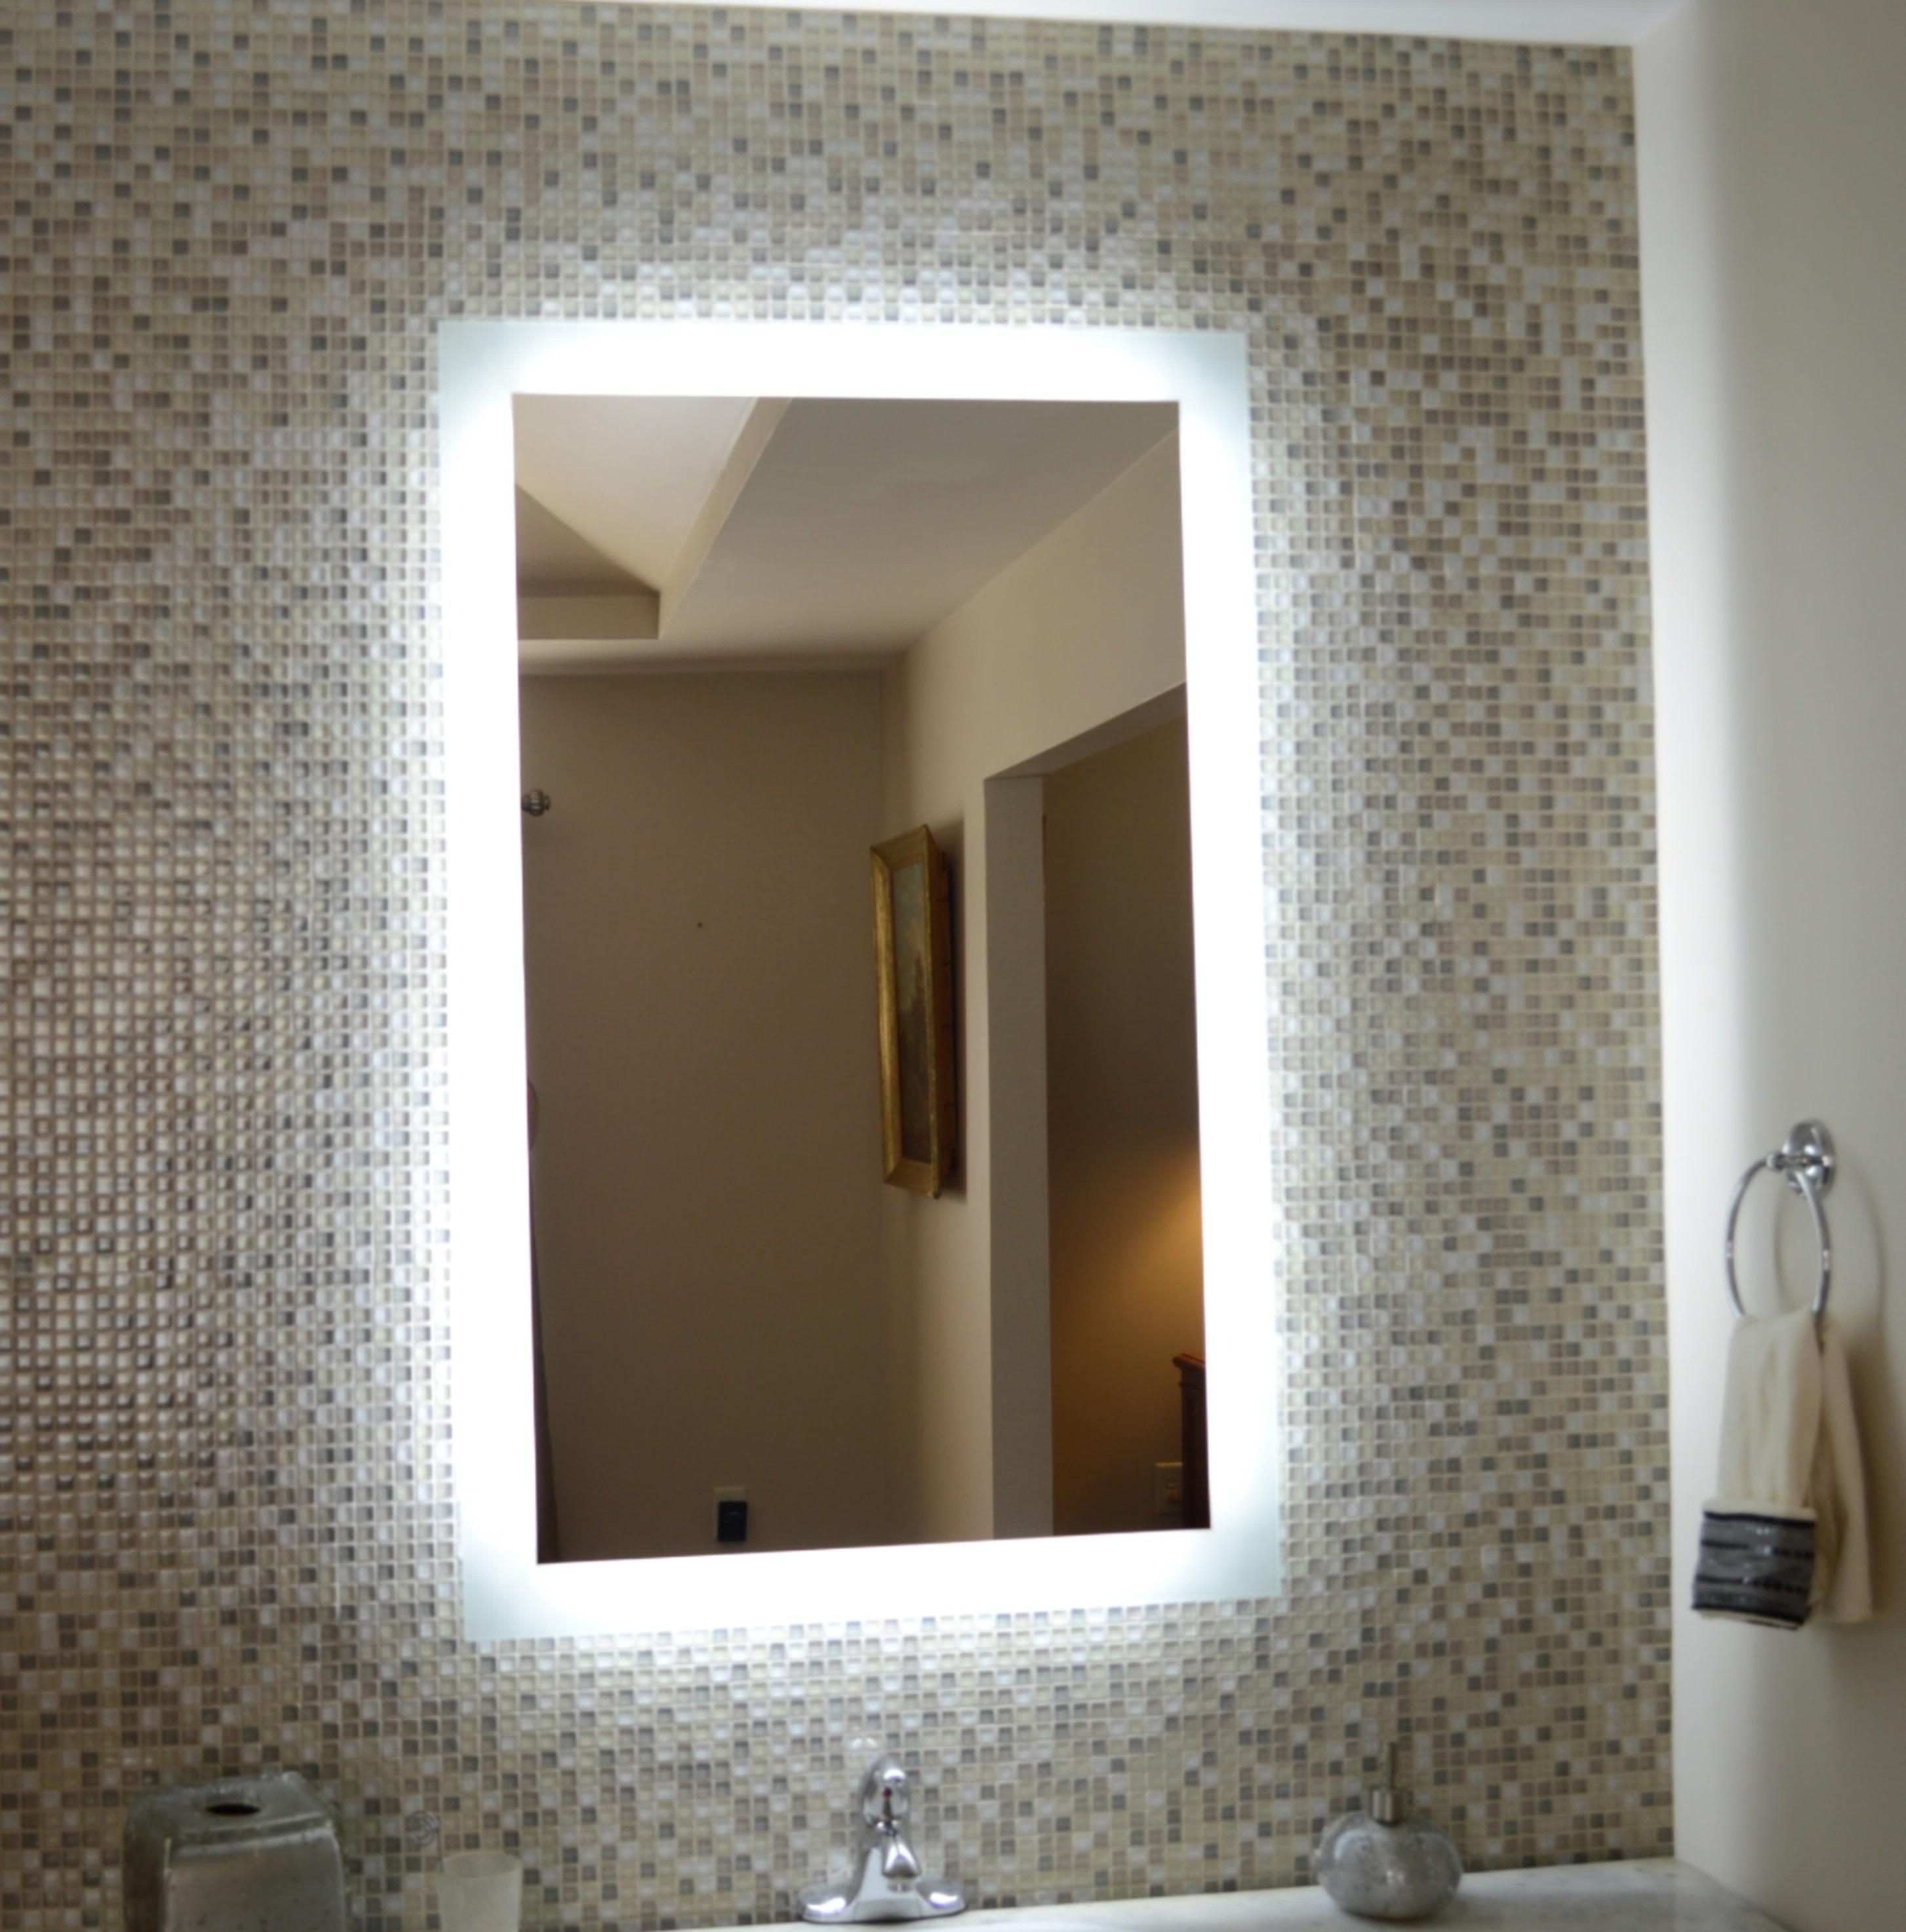 Lighted Vanity Mirror With Regard To Magnifying Vanity Mirrors For Bathroom (Image 12 of 20)